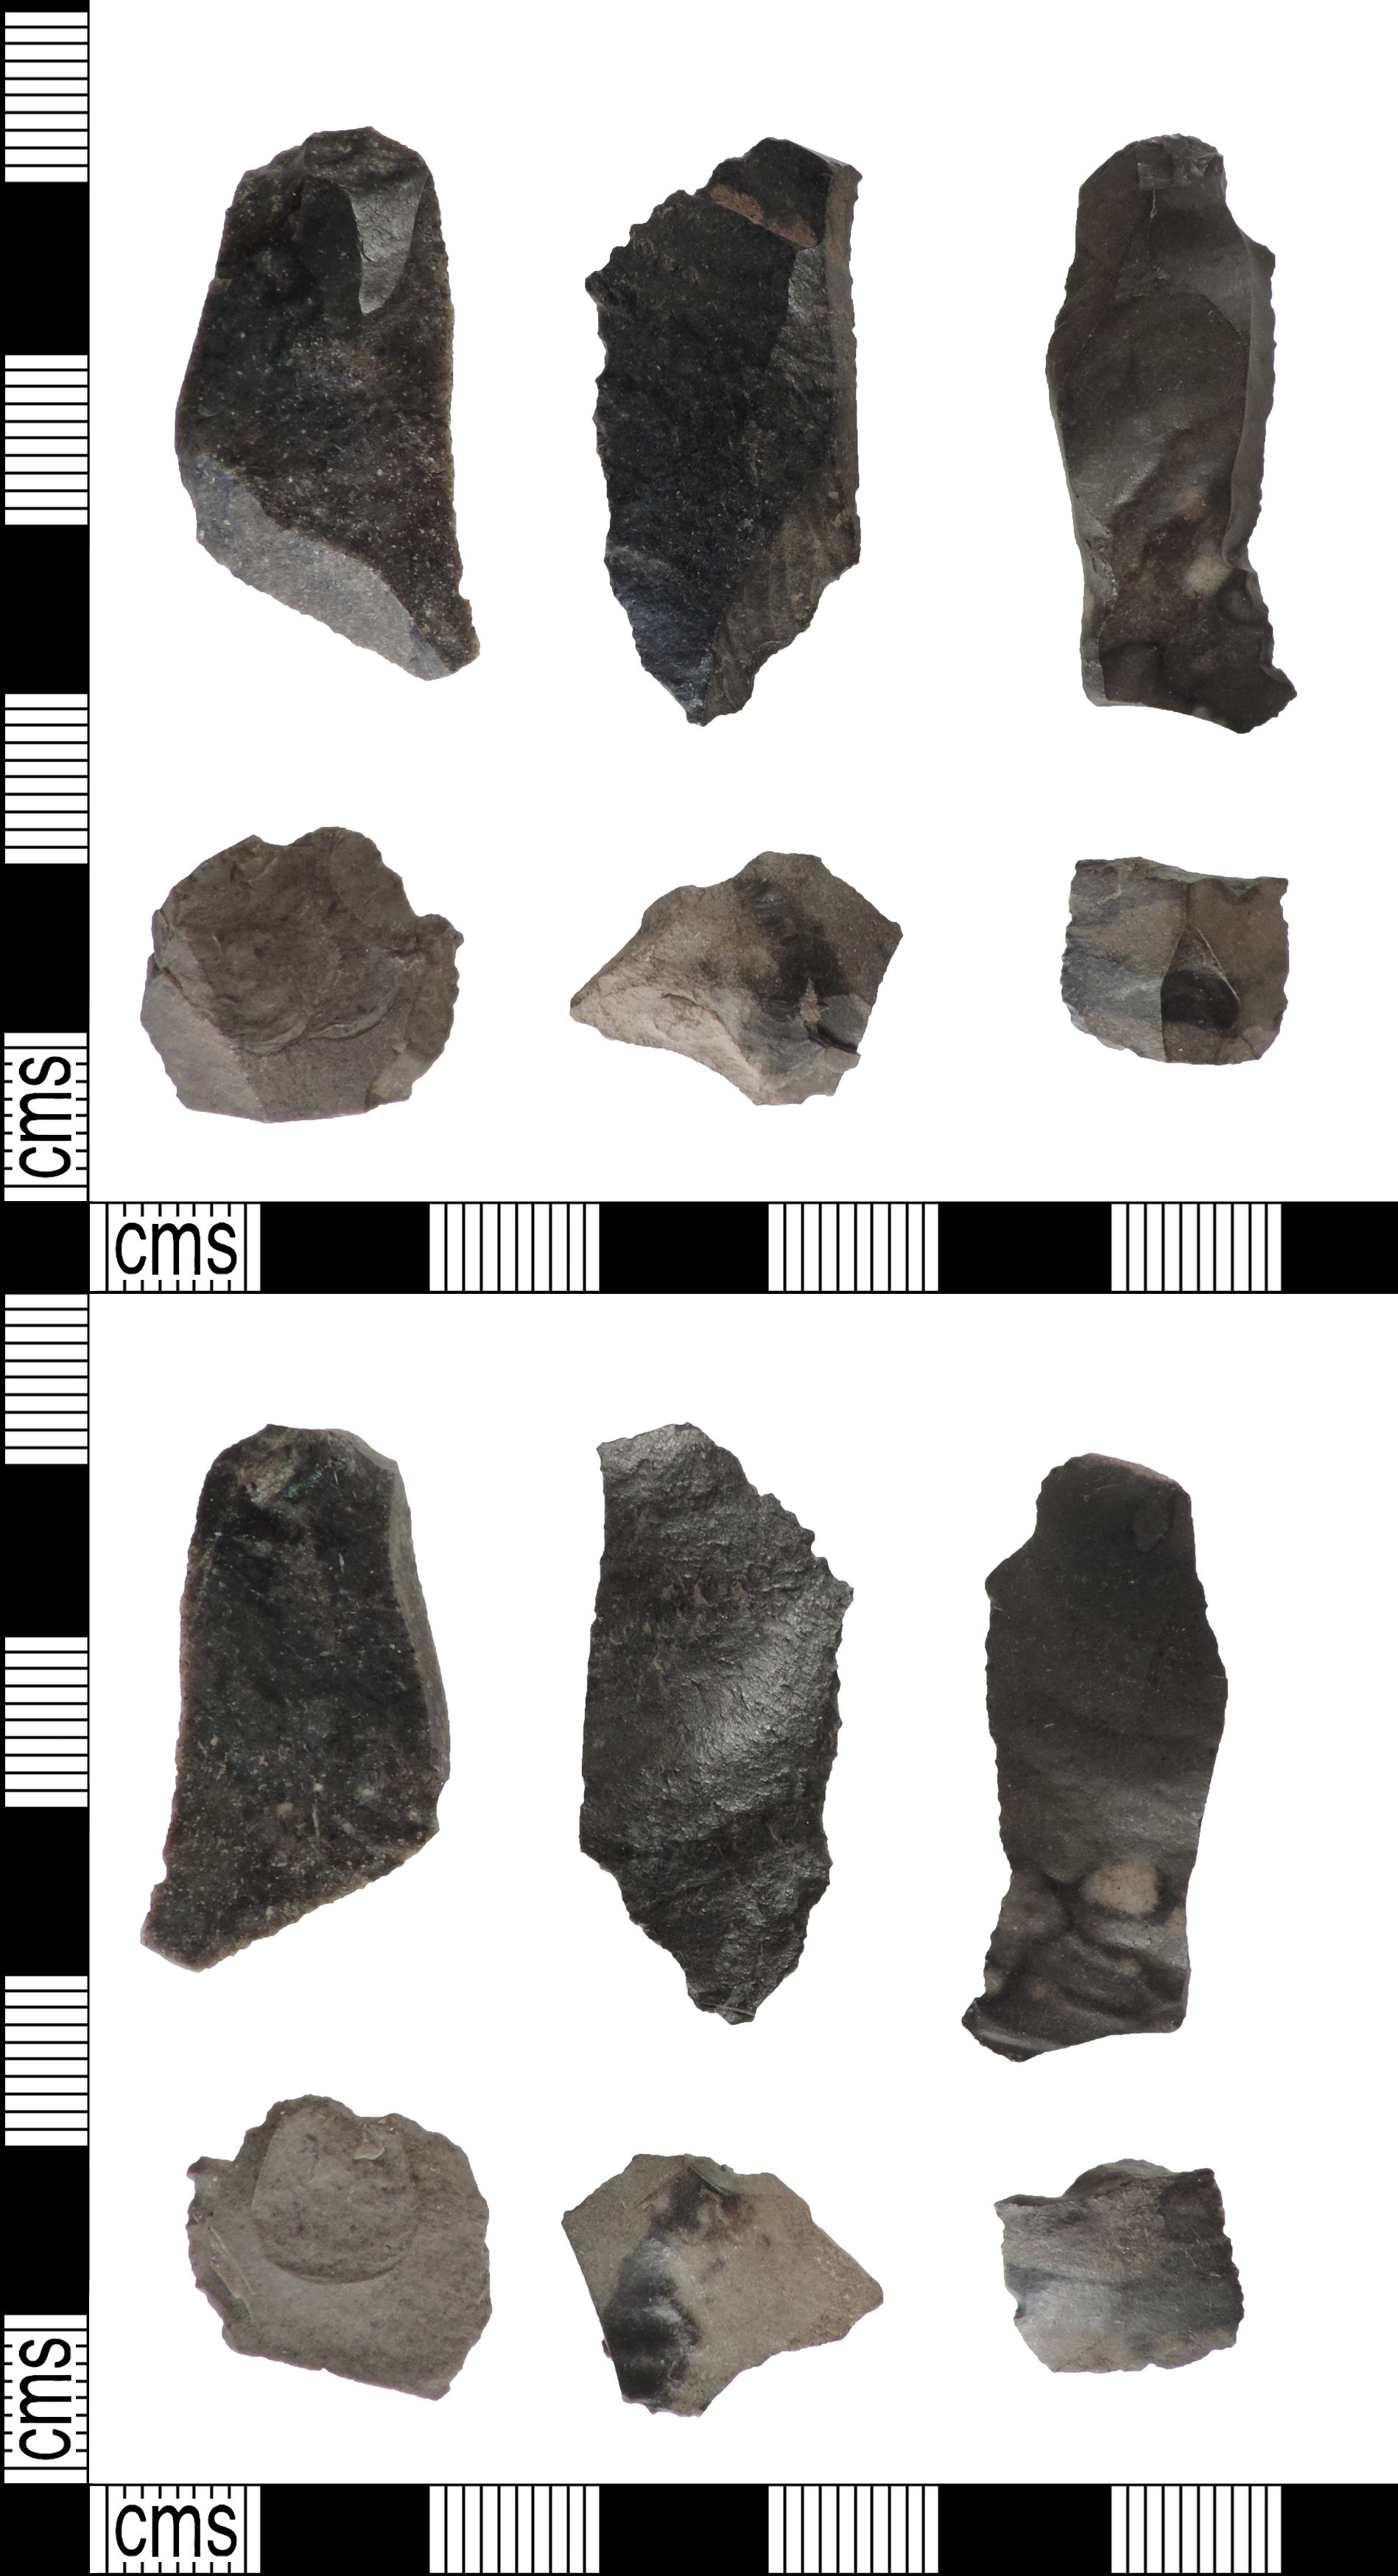 Blades of chert. Chert could be used instead of flint, which was harder to get hold of. Image courtesy of the Portable Antiquities Scheme